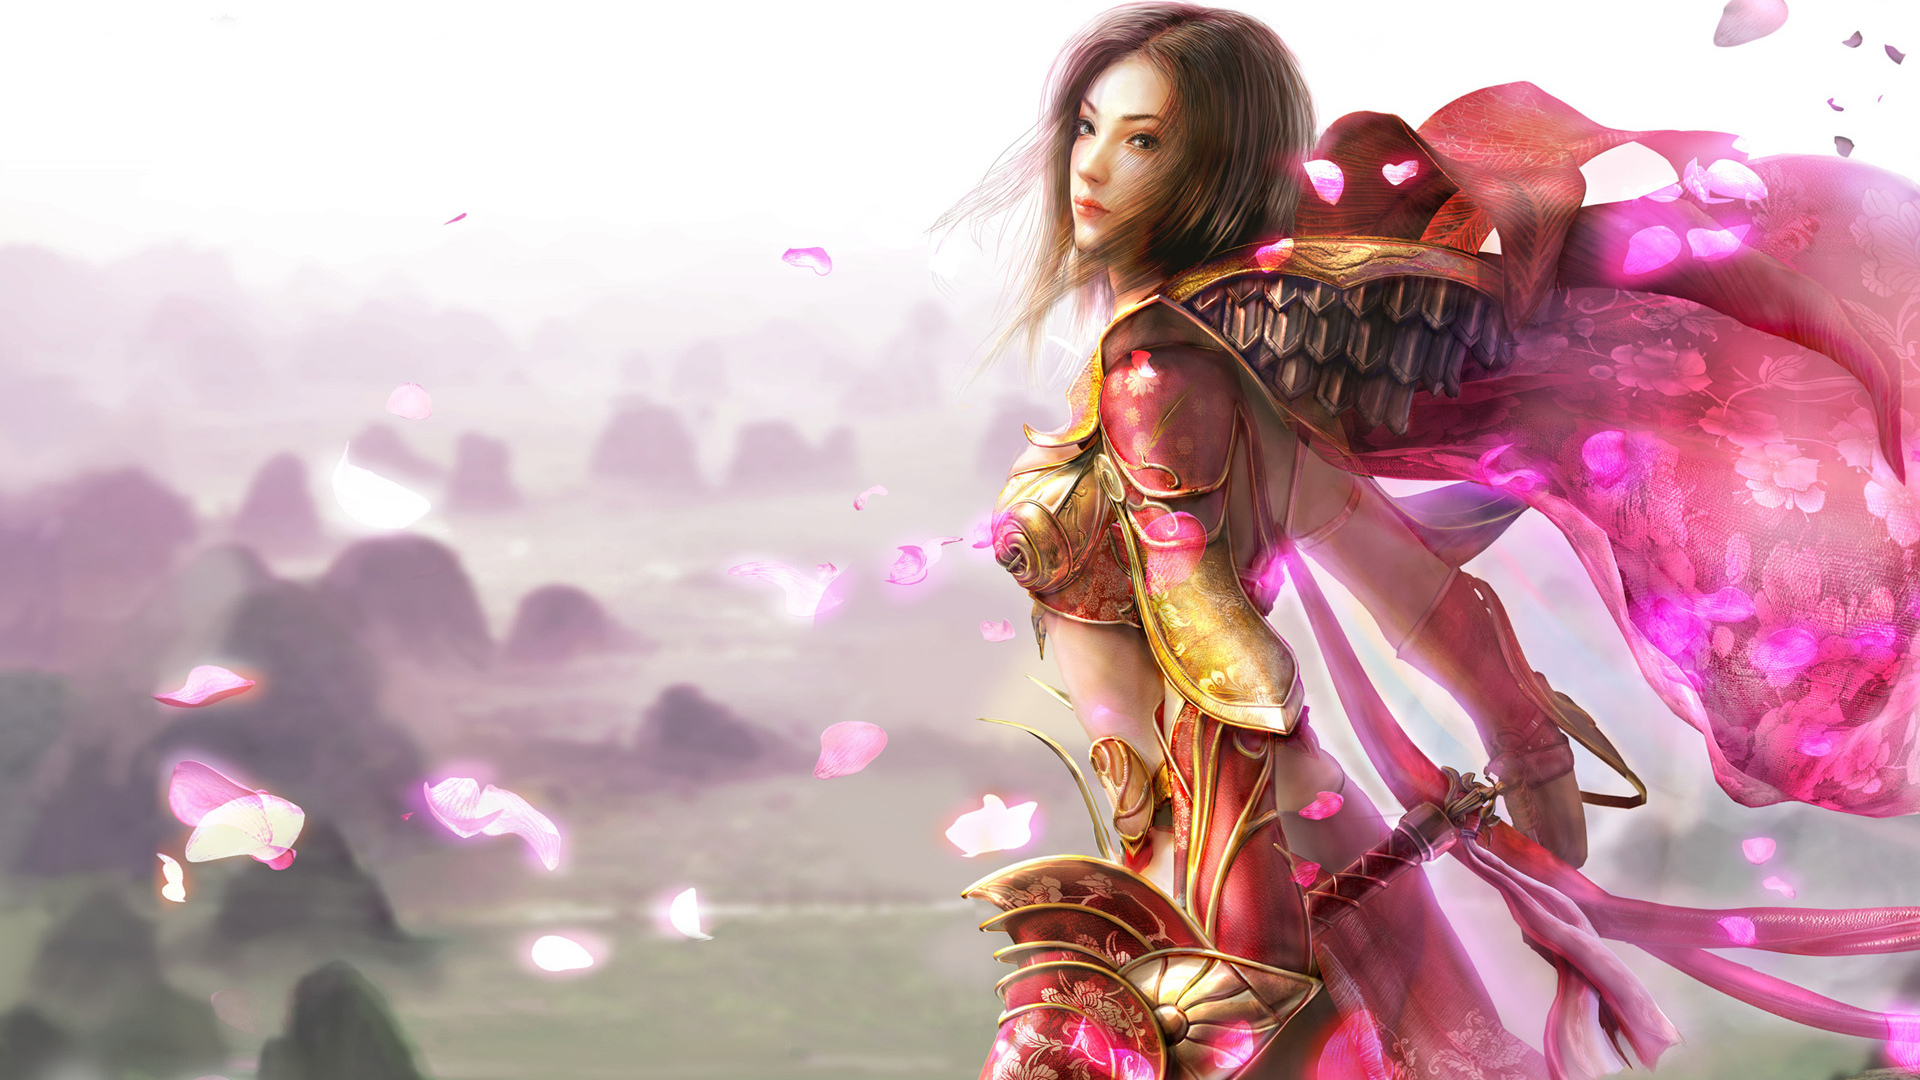 Fantasy Girl HD Wallpapers - HD Wallpapers Backgrounds of Your Choice